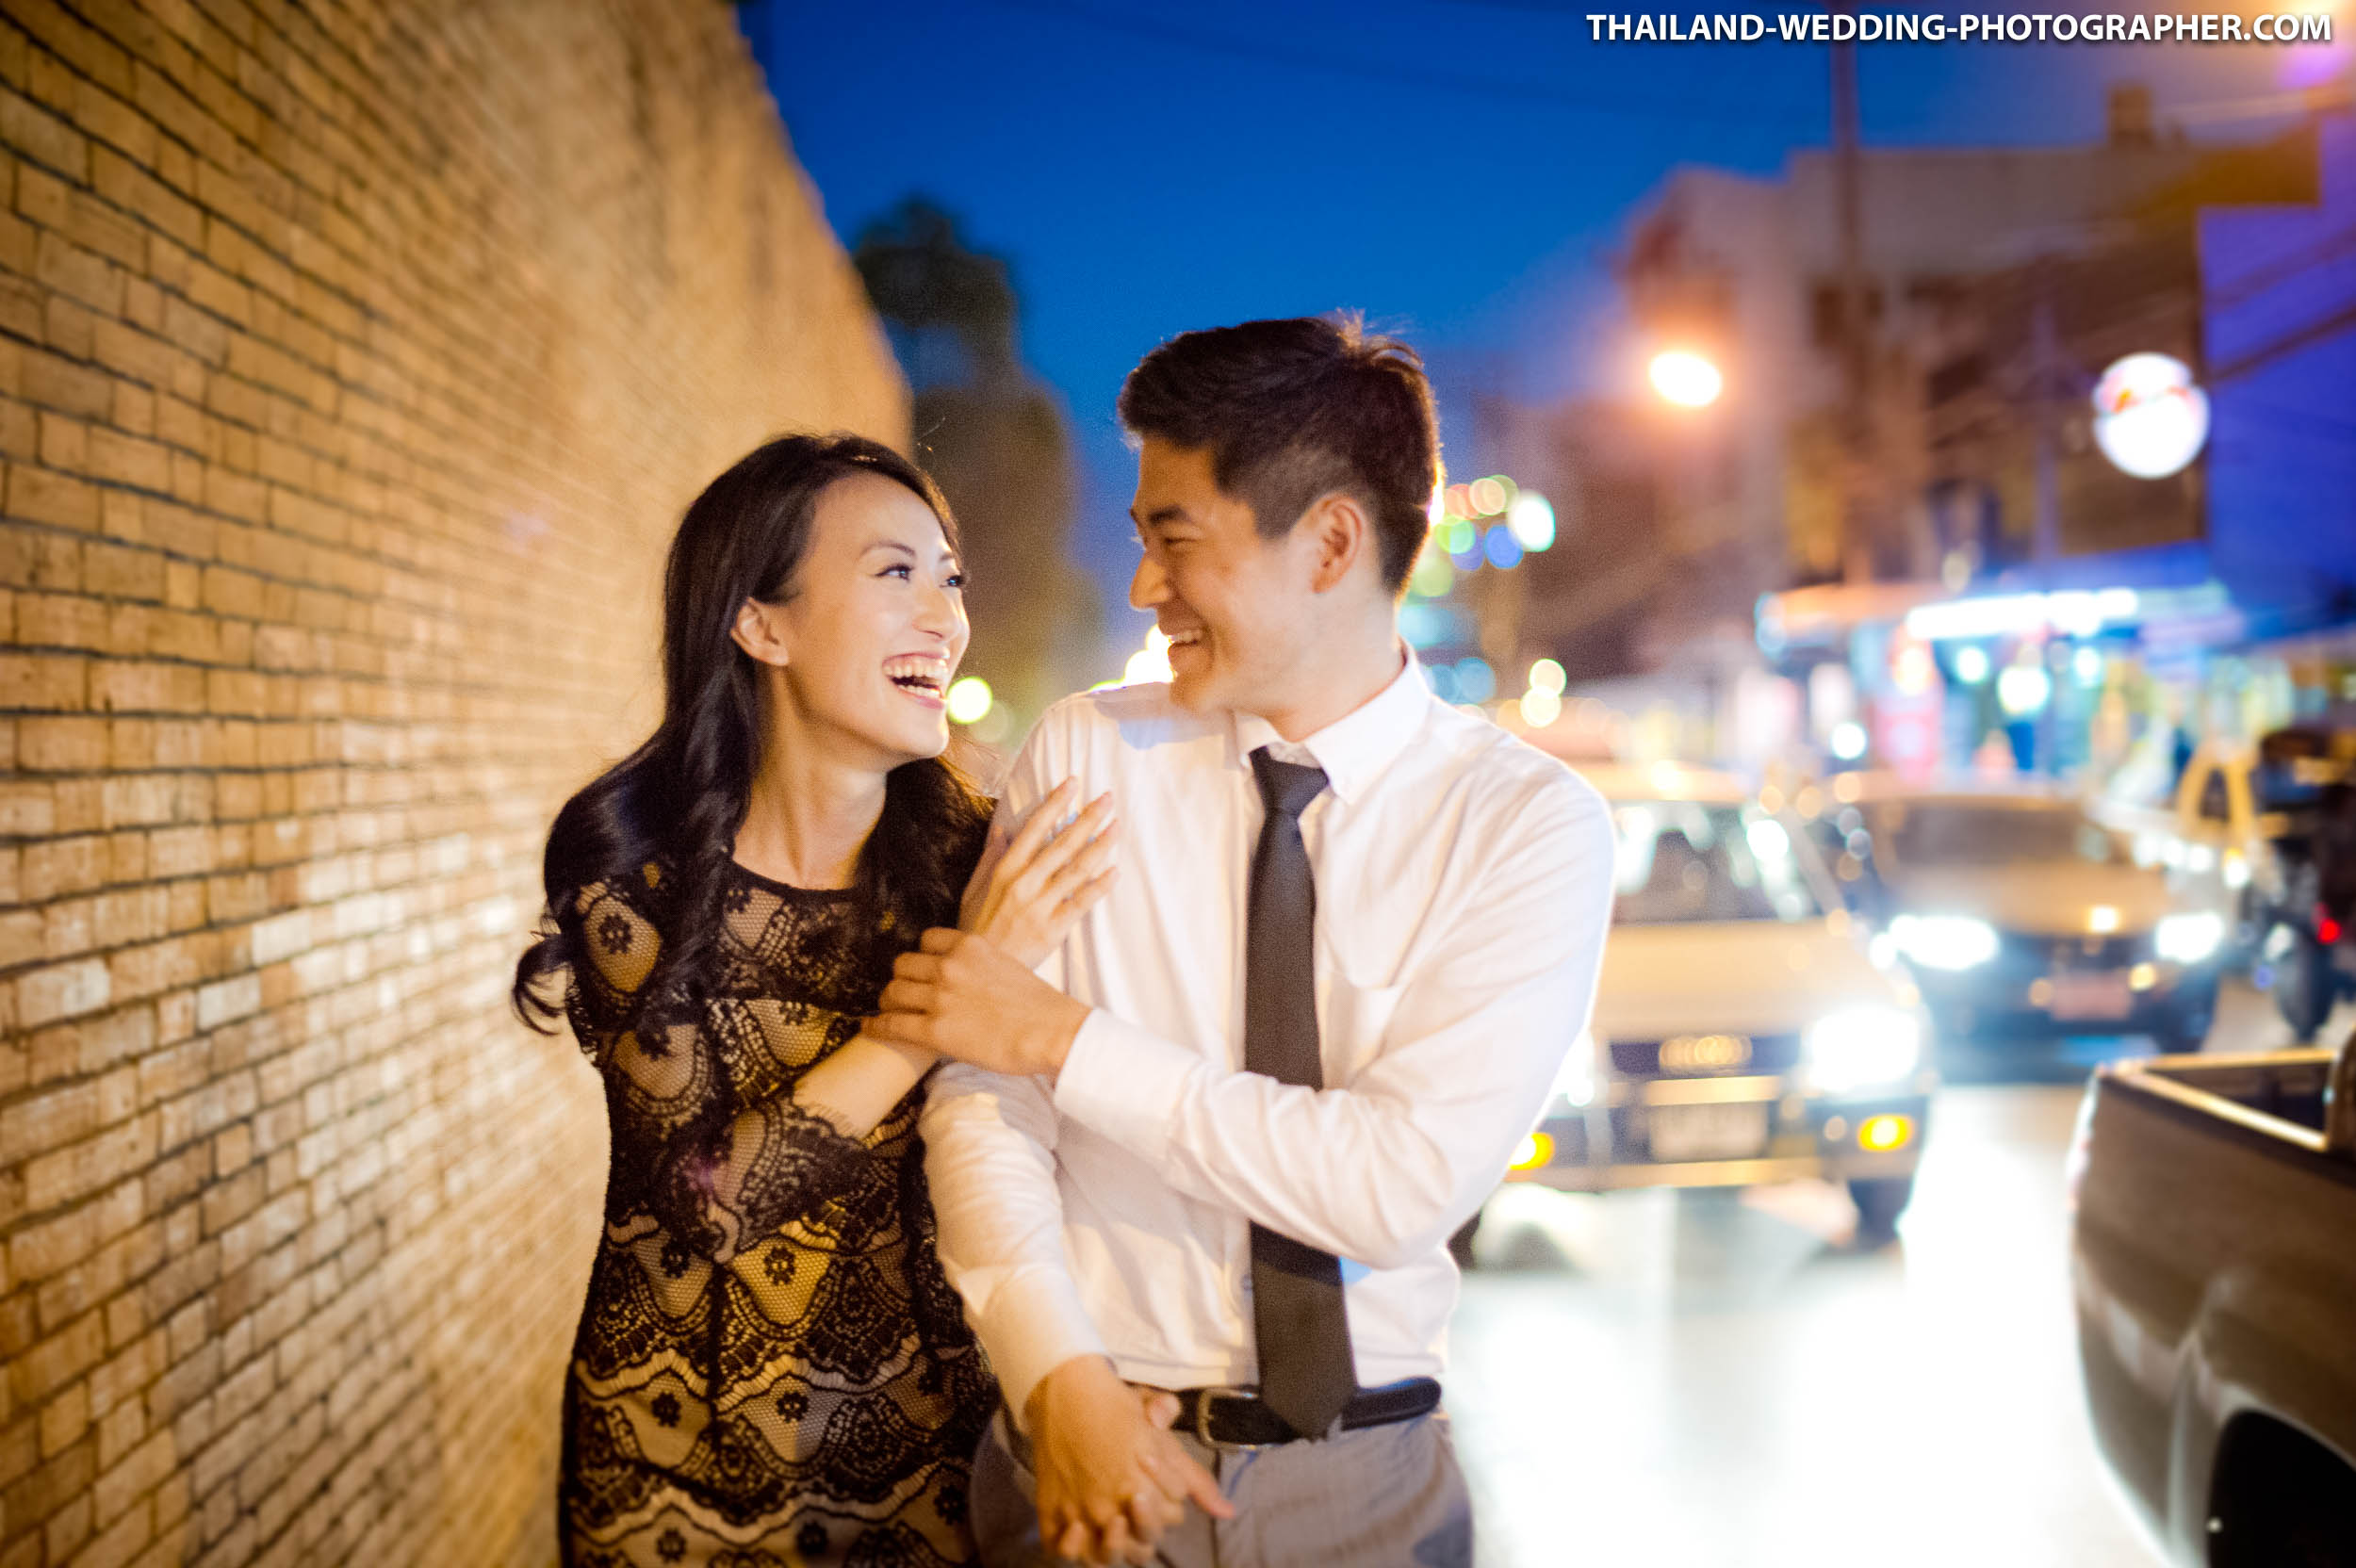 Photo of the Day: Night Prenuptial in Chiang Mai Thailand